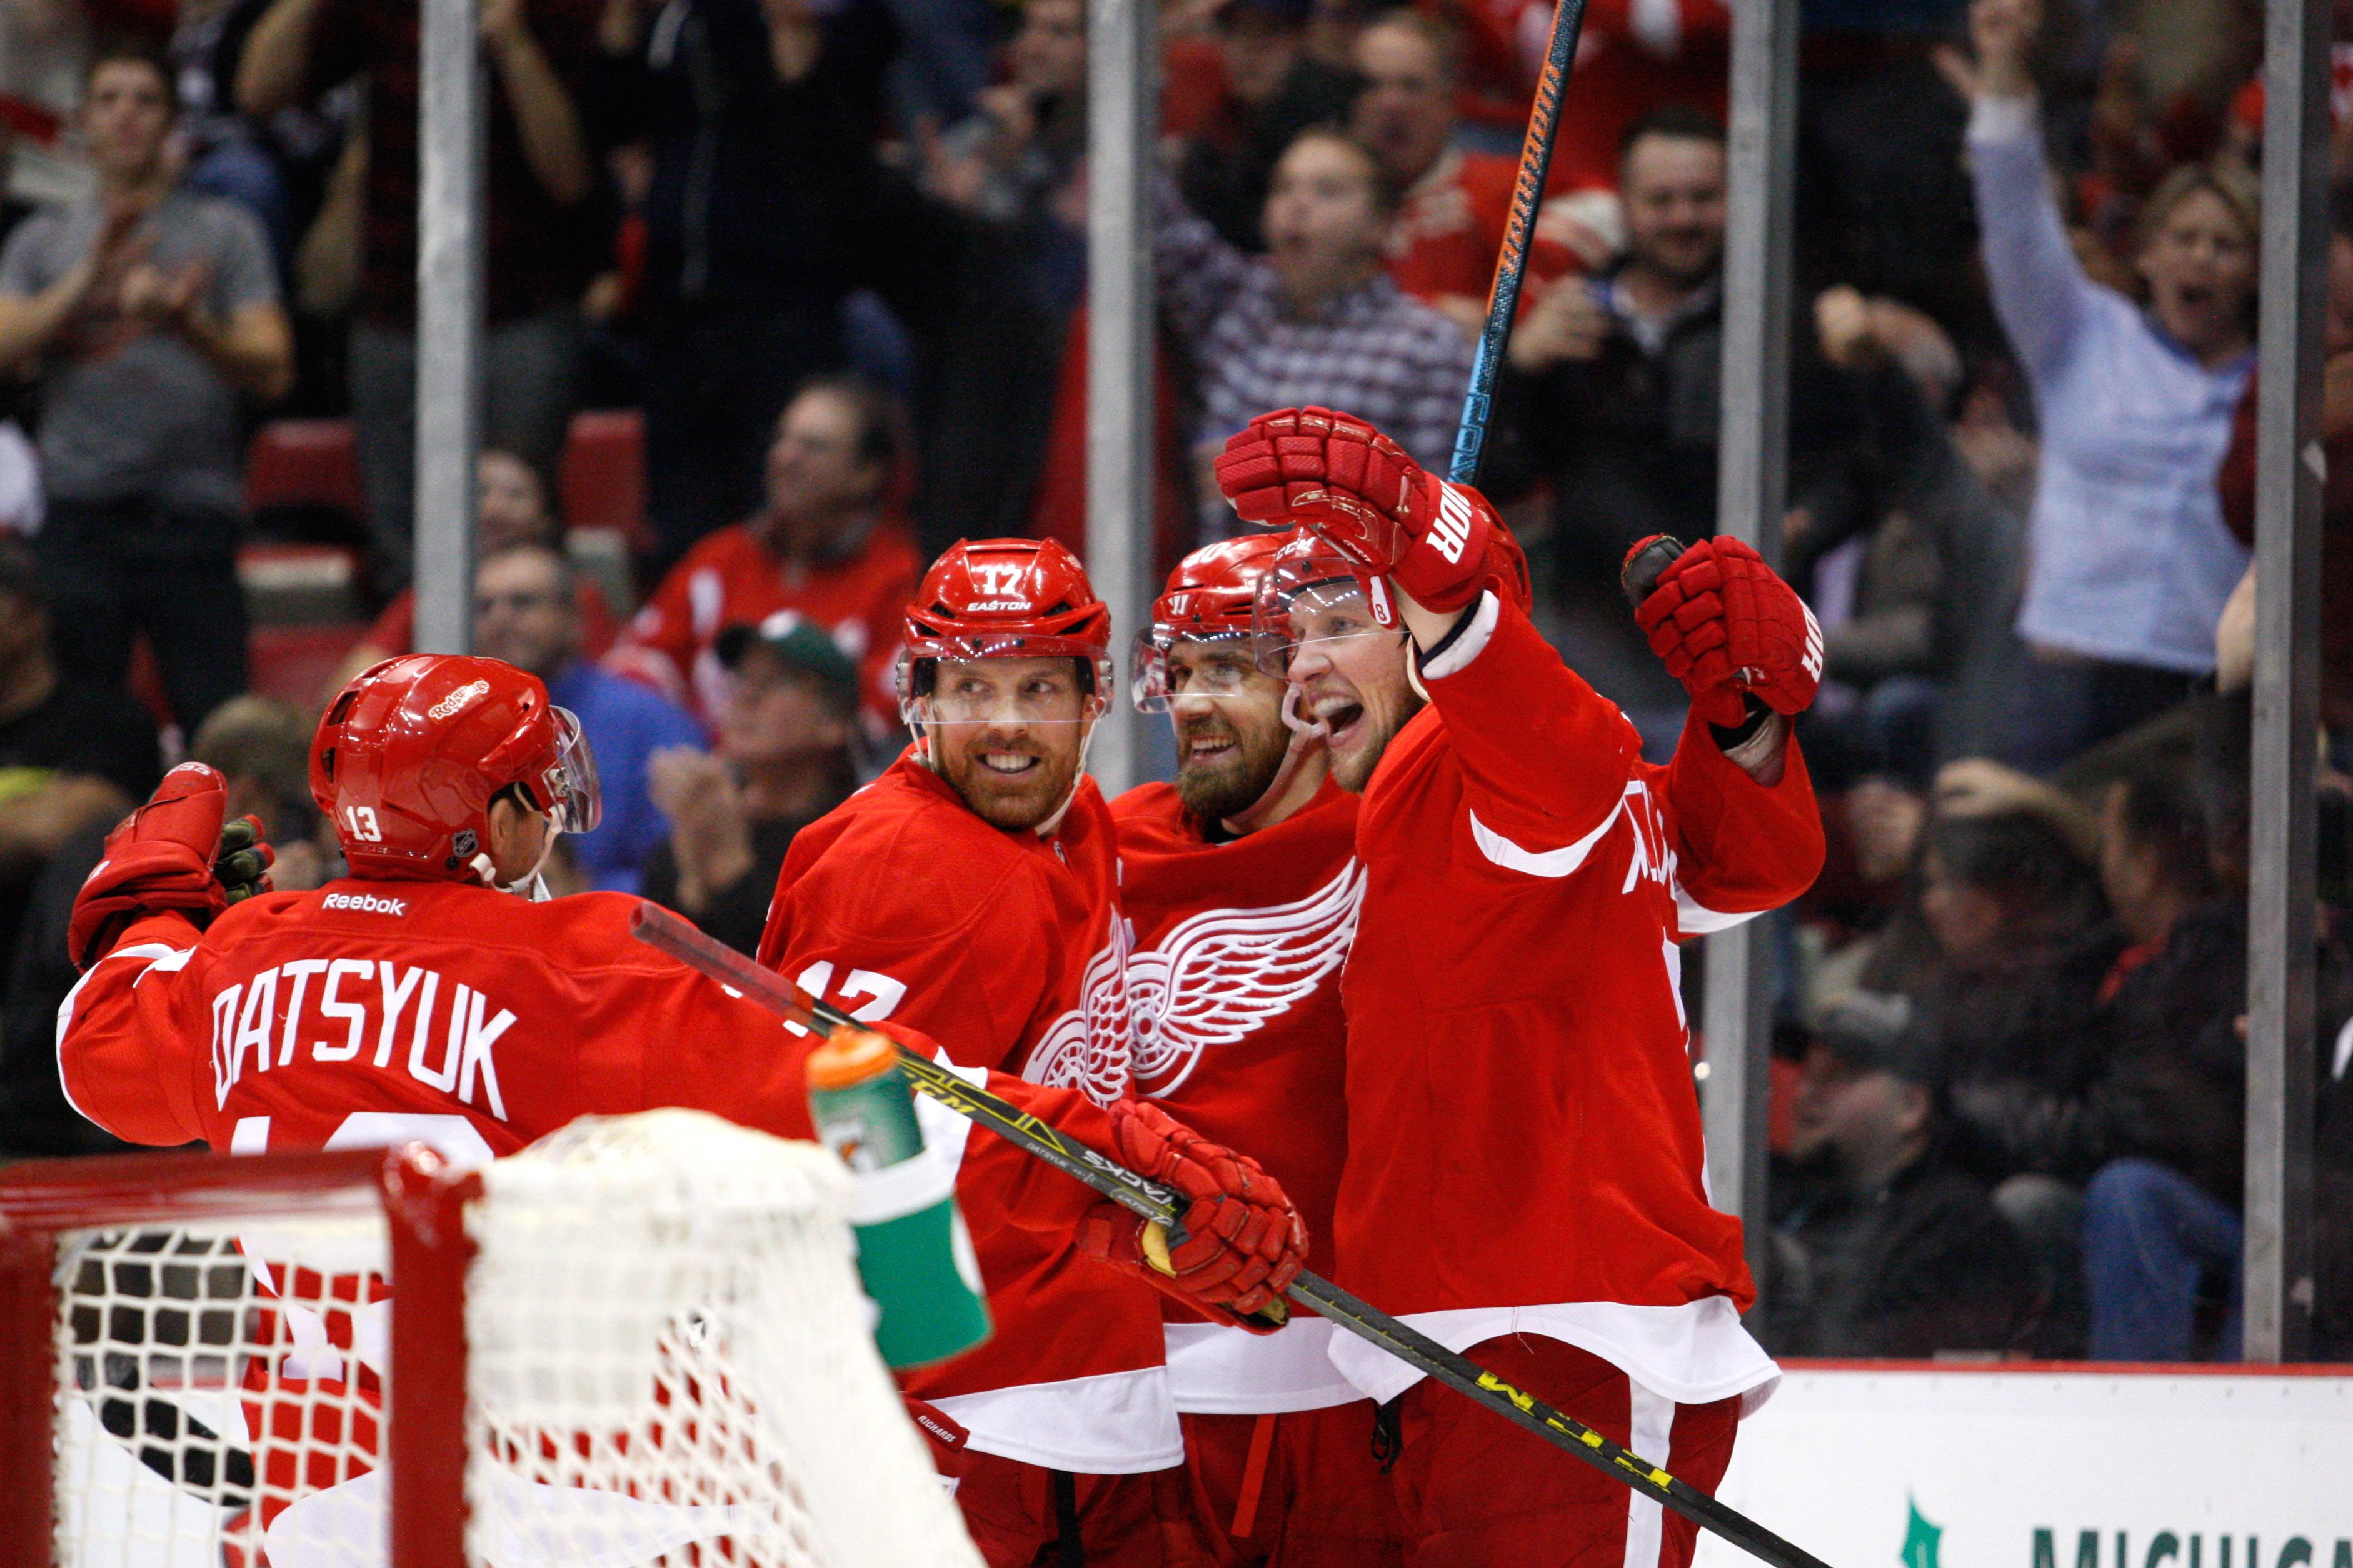 8989048-nhl-montreal-canadiens-at-detroit-red-wings